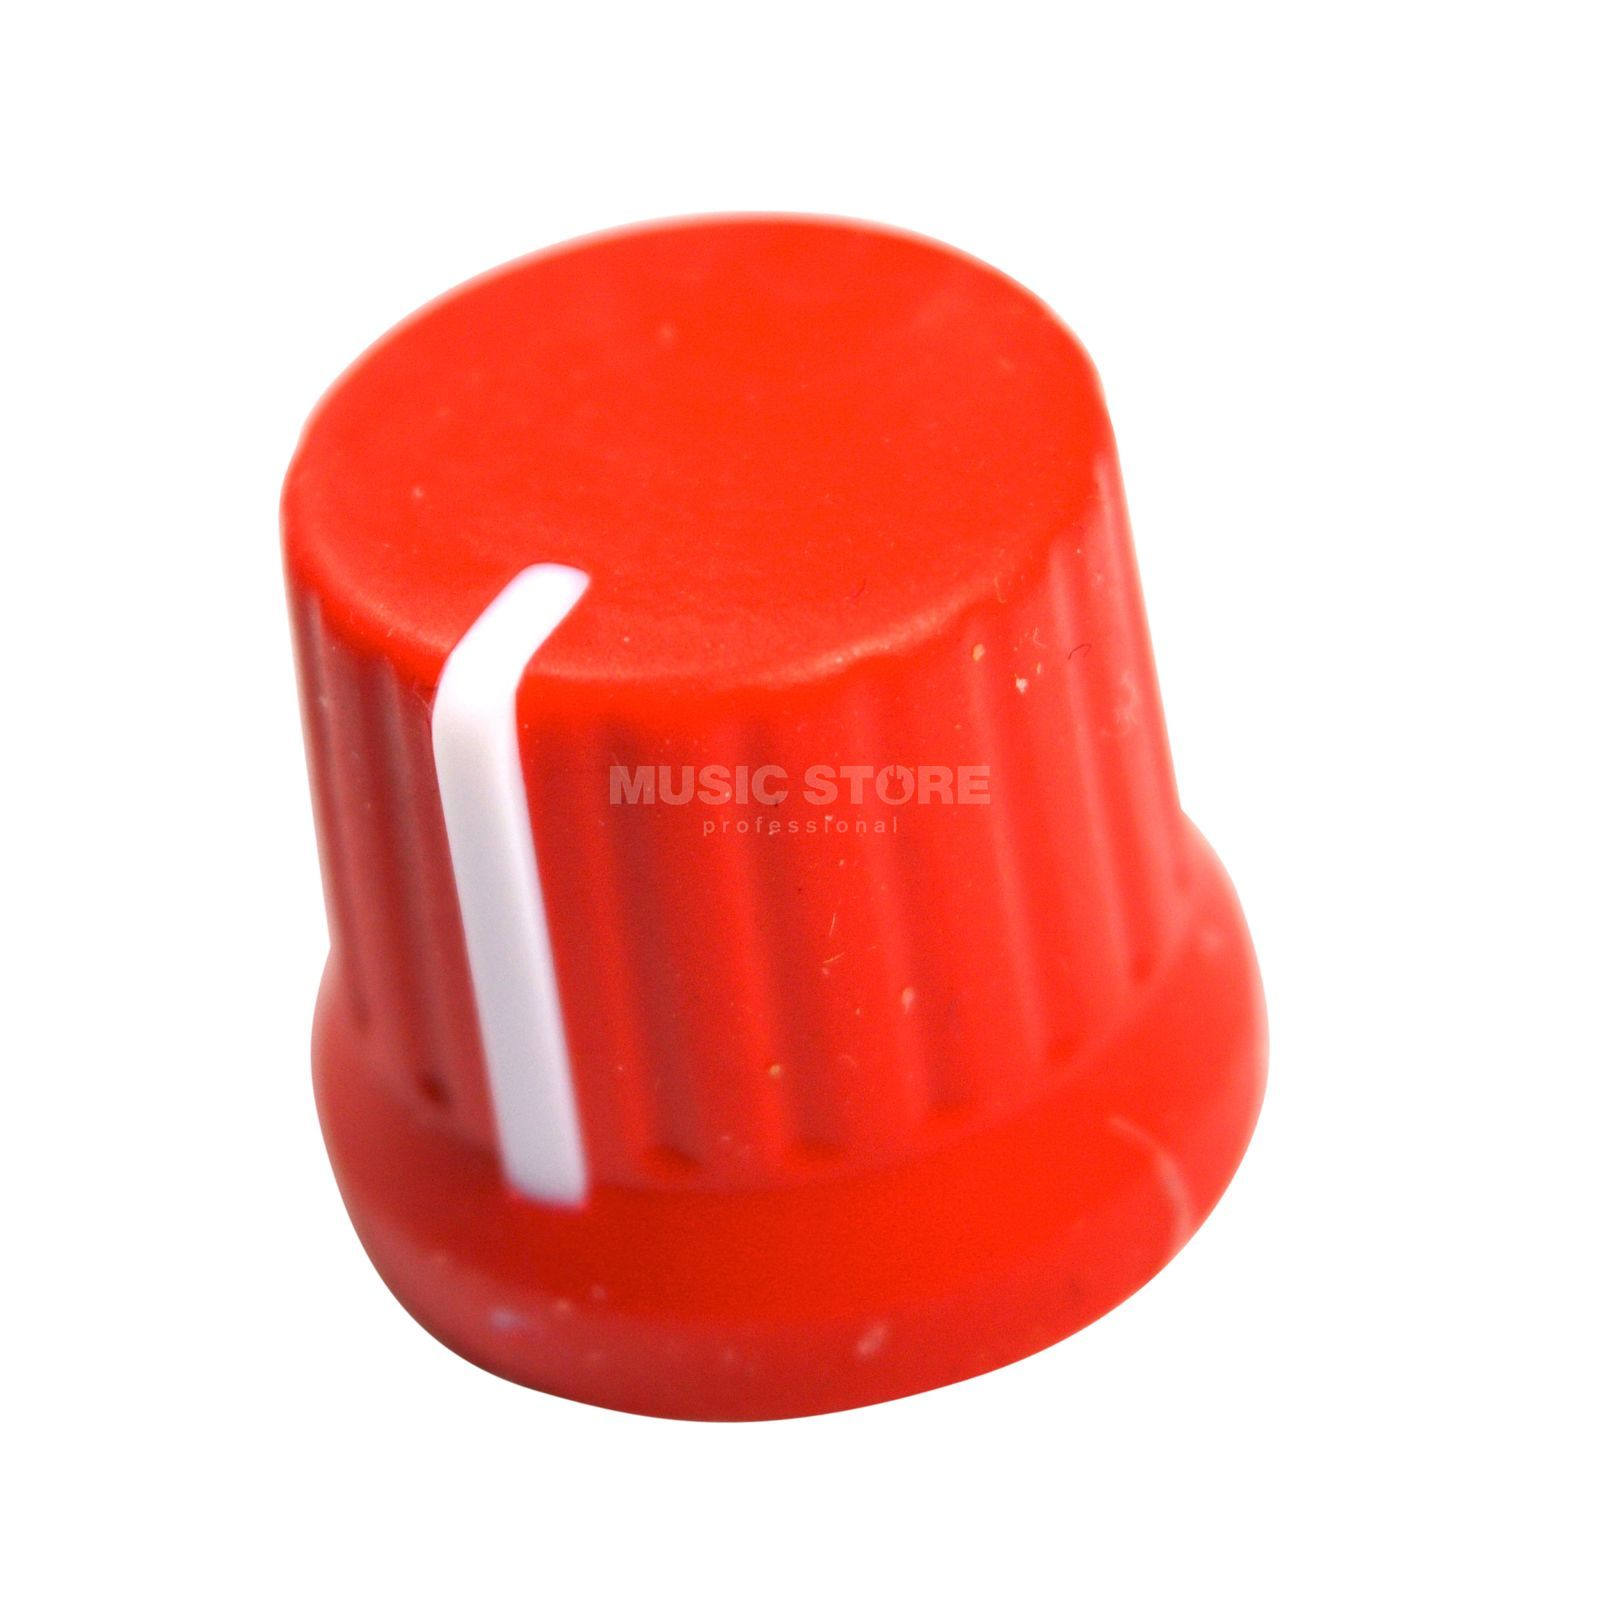 DJ TECHTOOLS Chroma Caps Fatty Knob red  Image du produit